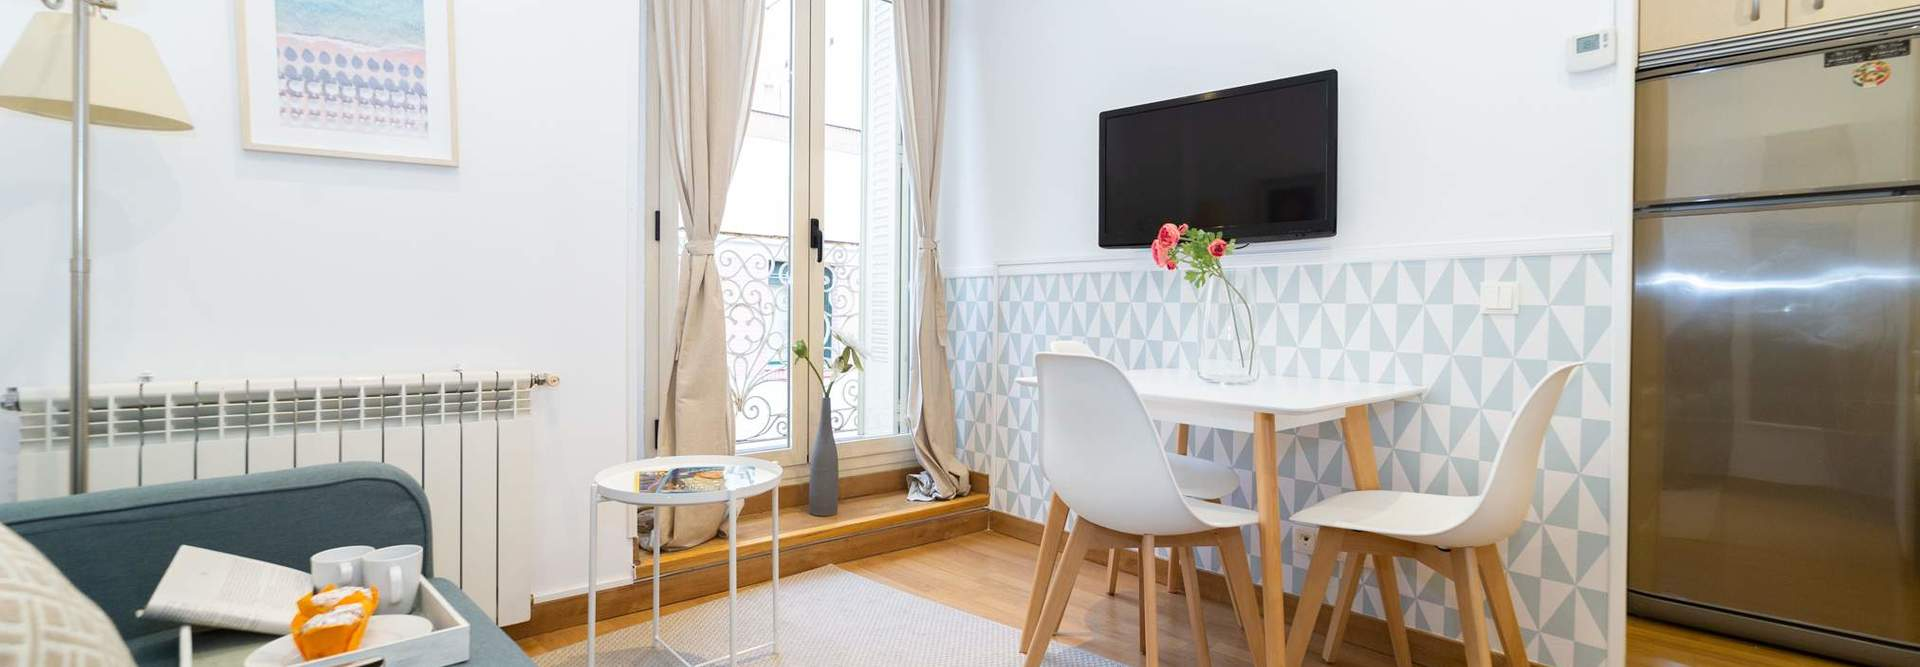 Home alquiler apartamentos madrid mad4rent 23